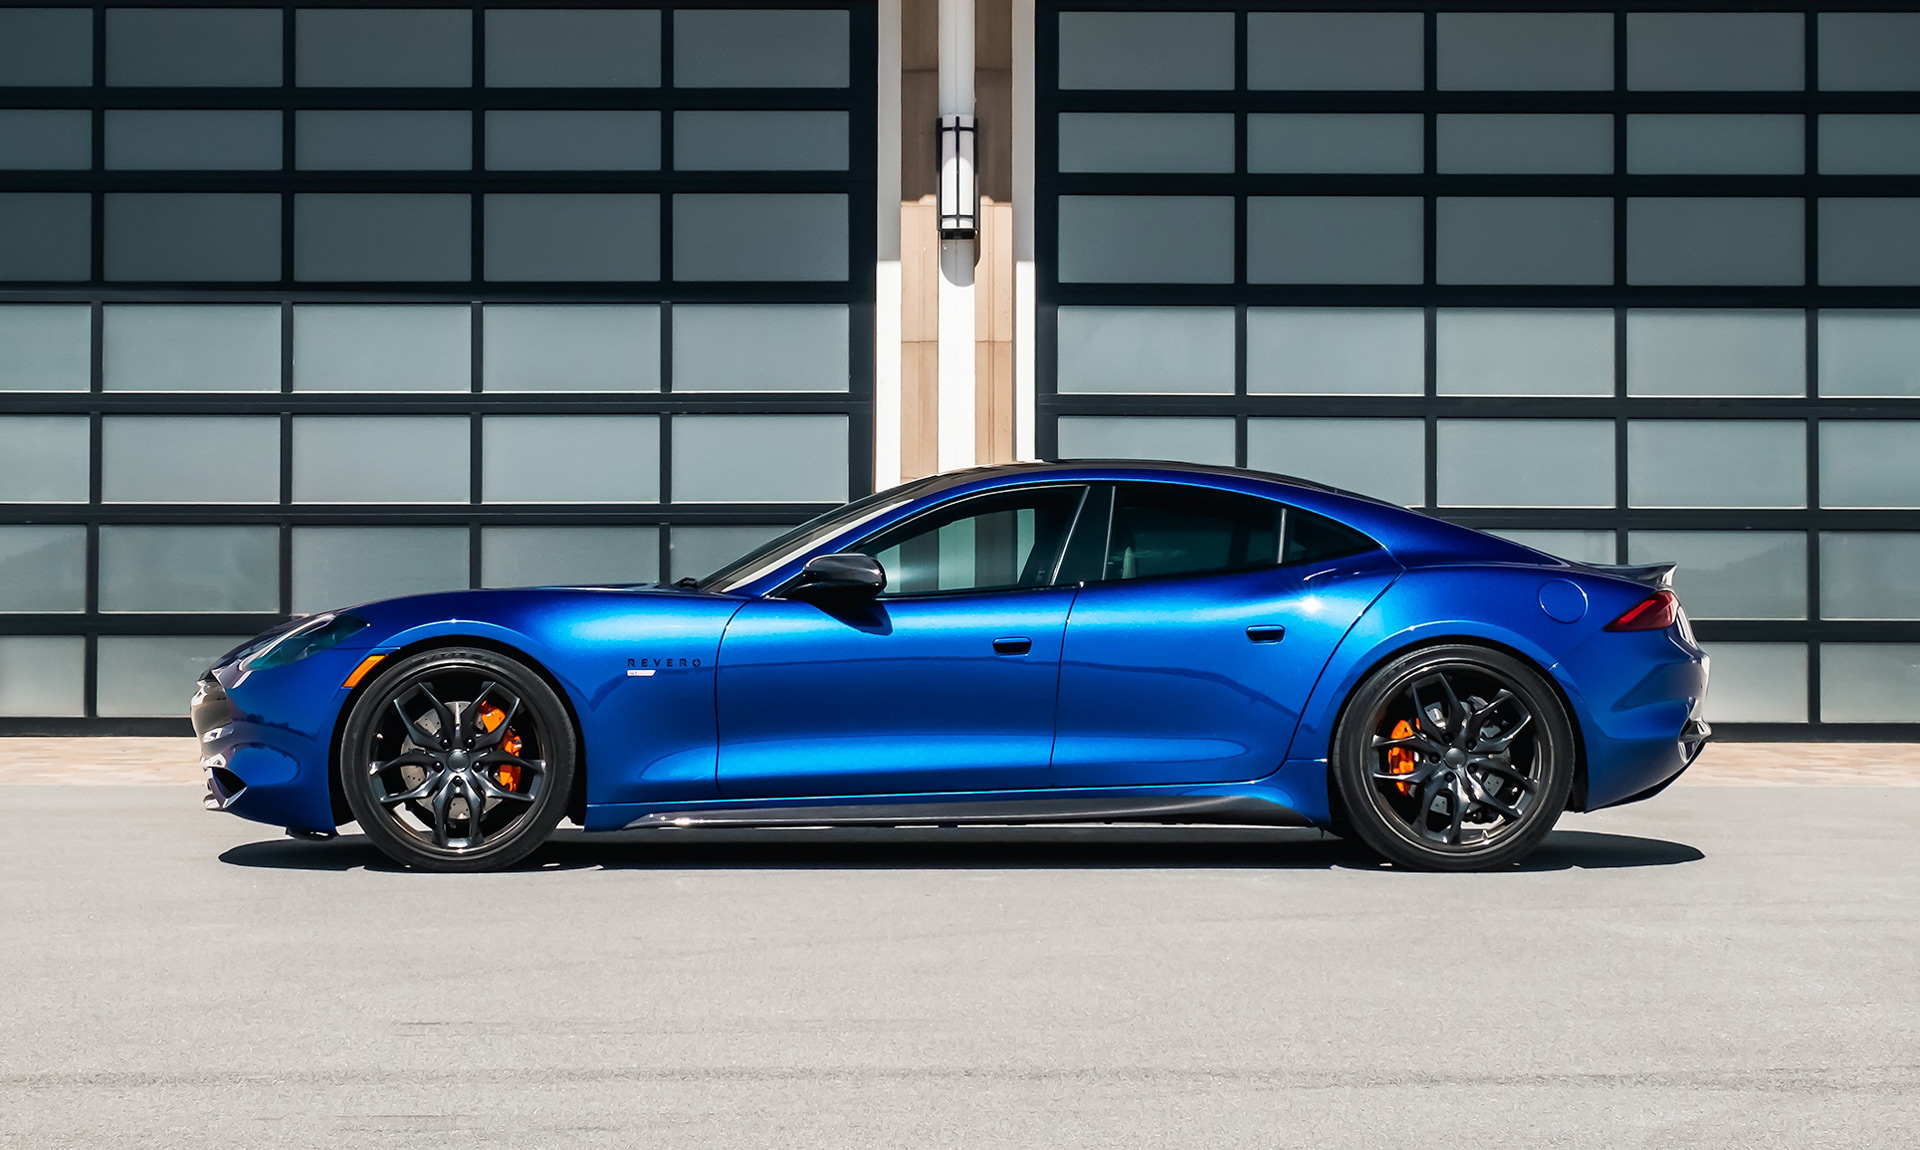 2021 Vw Arteon 2020 Karma Revero Gt Bentley Job Cuts Today S